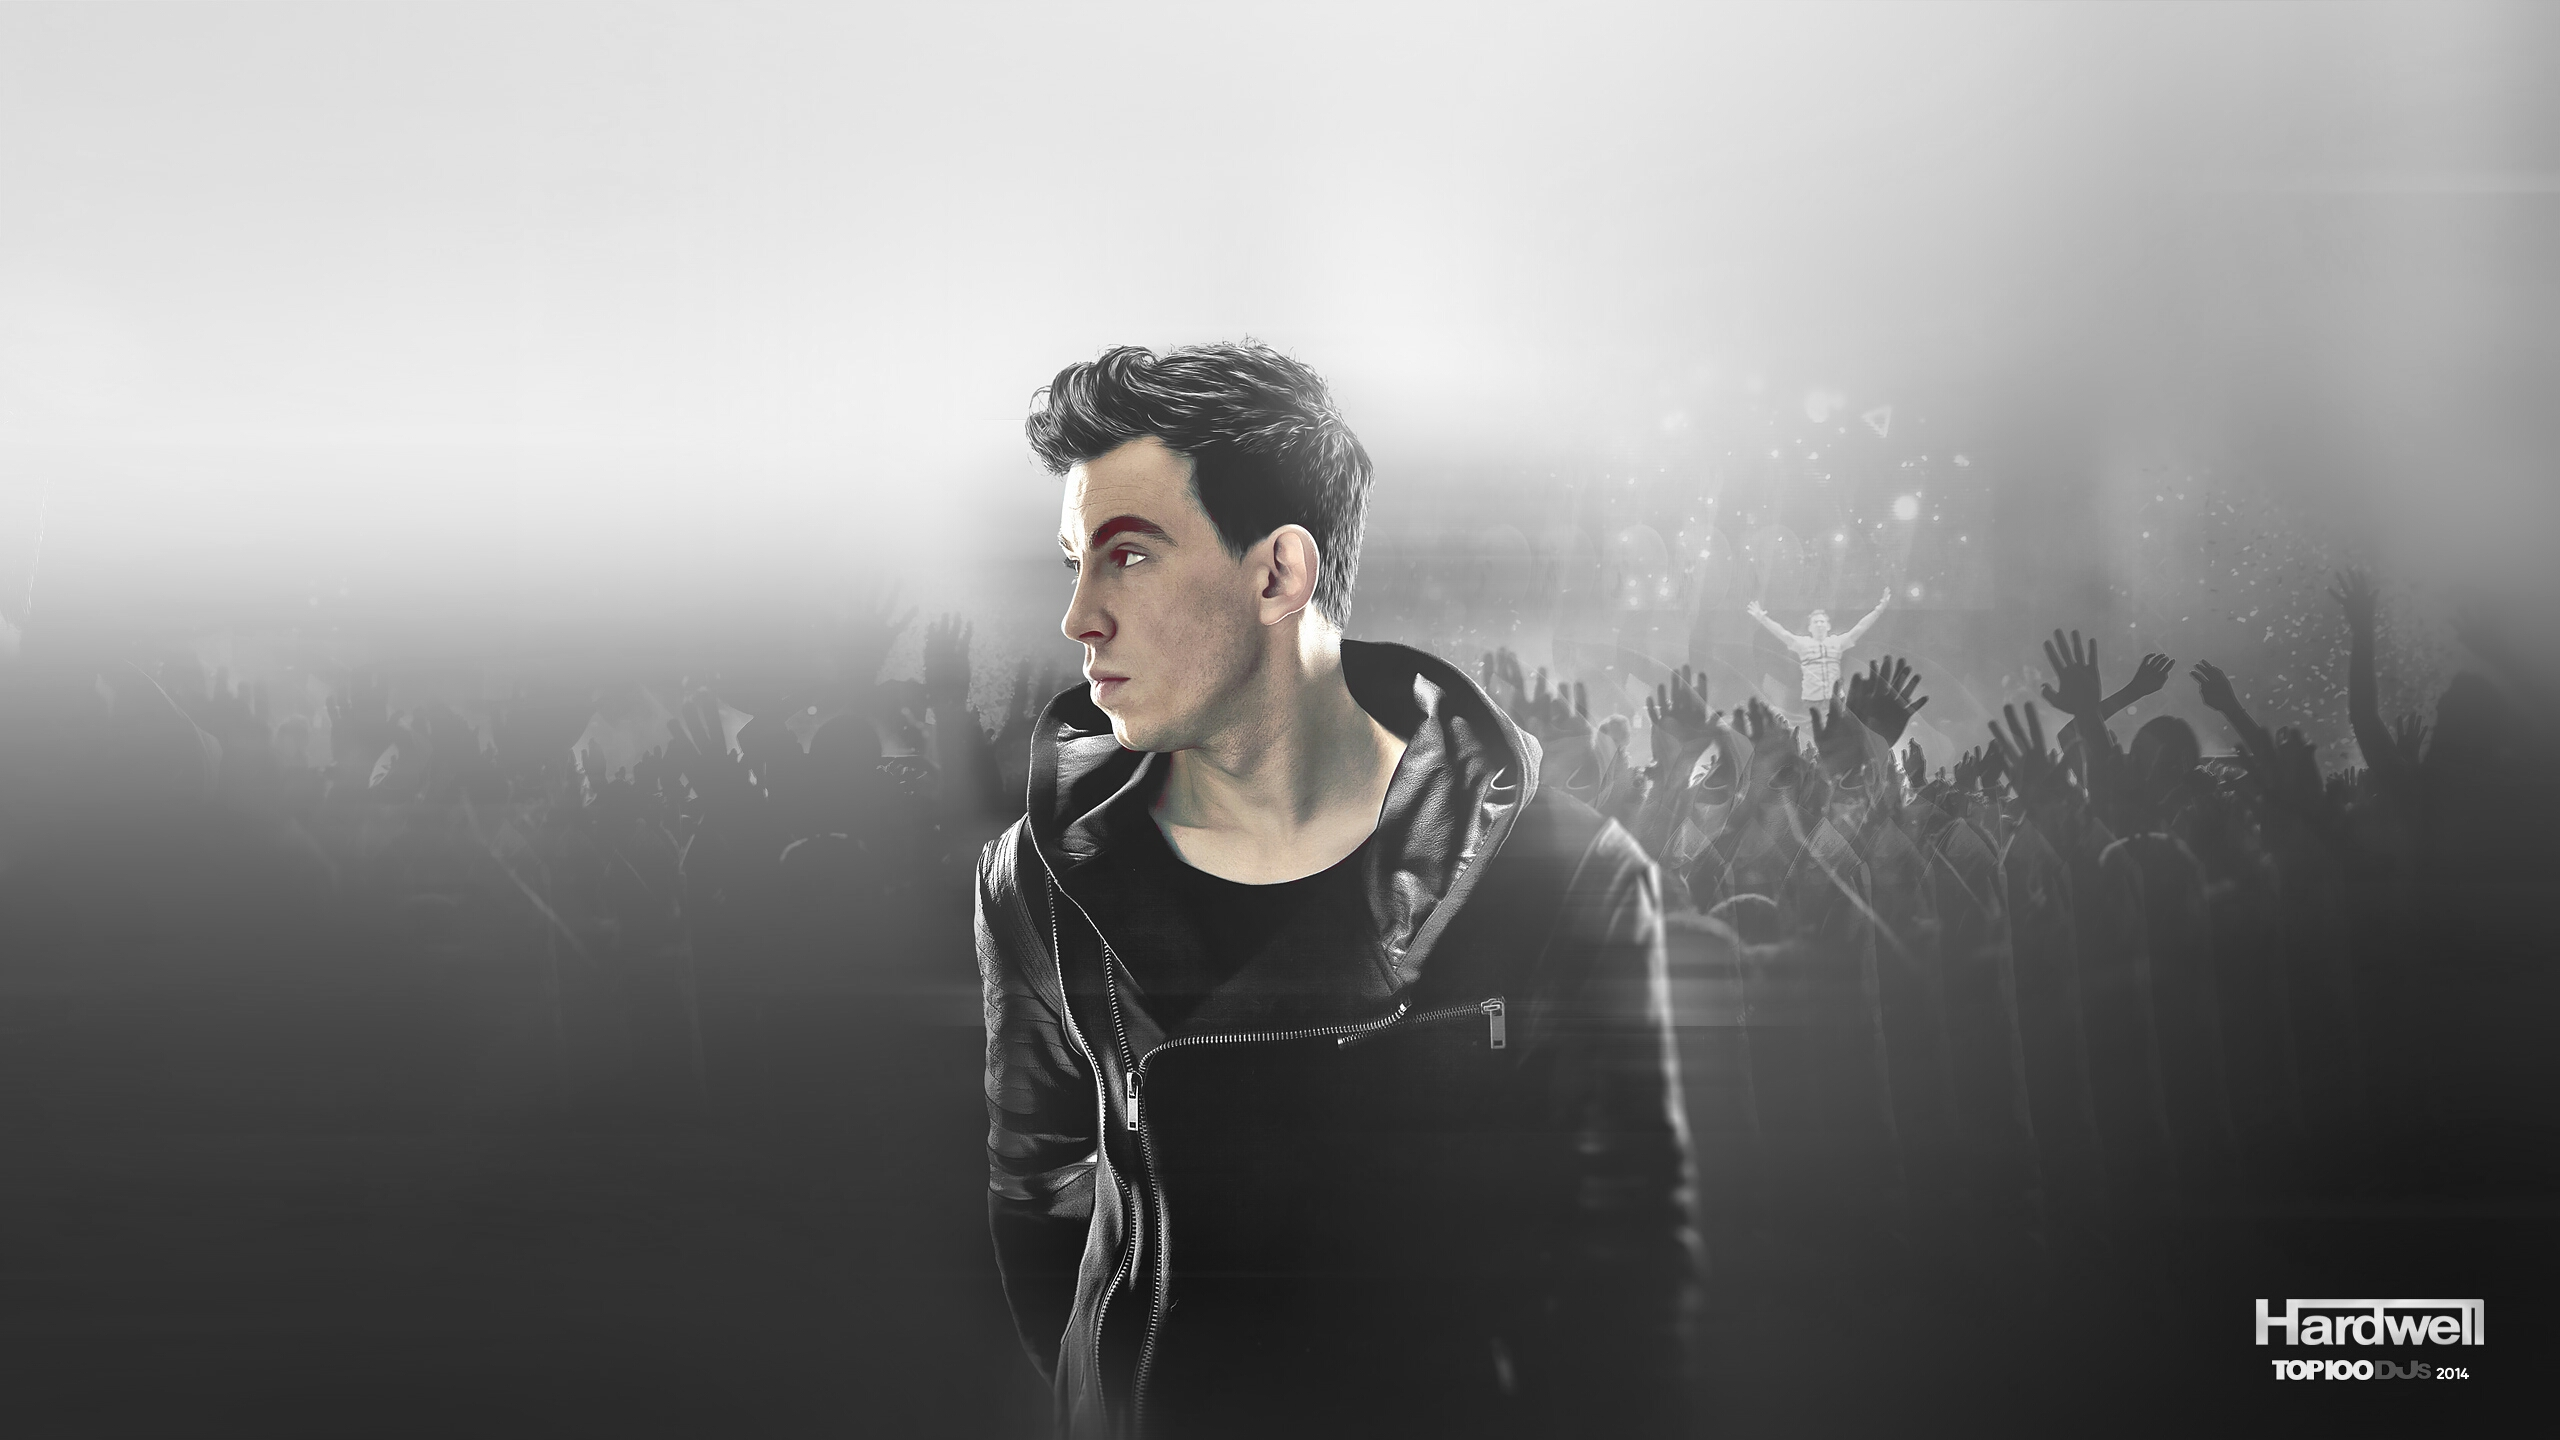 hardwell wallpaper hd - photo #4